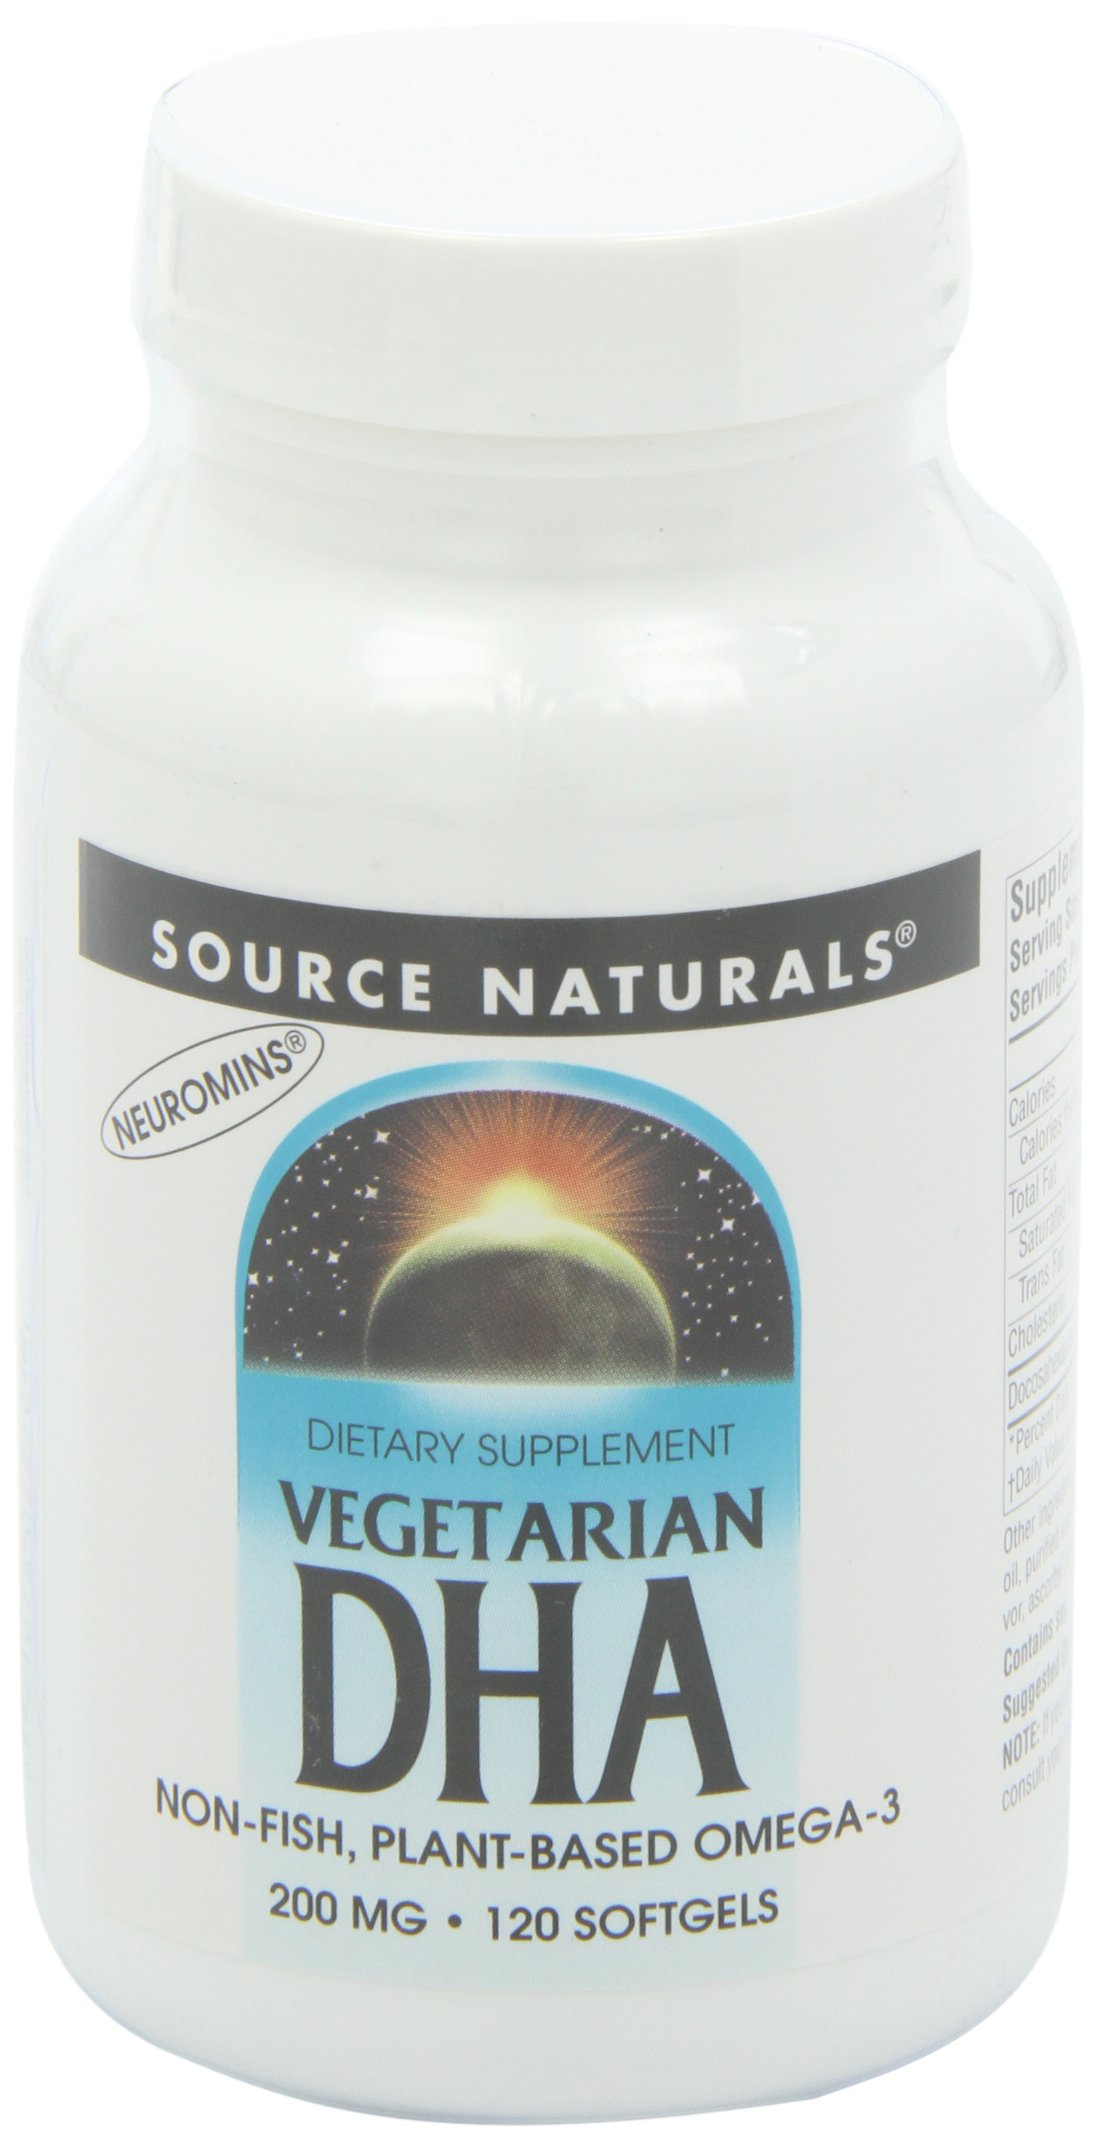 Source Naturals Vegetarian DHA with Neuromins, Non-Fish Plant-Based Omega-3, 120 SoftGels